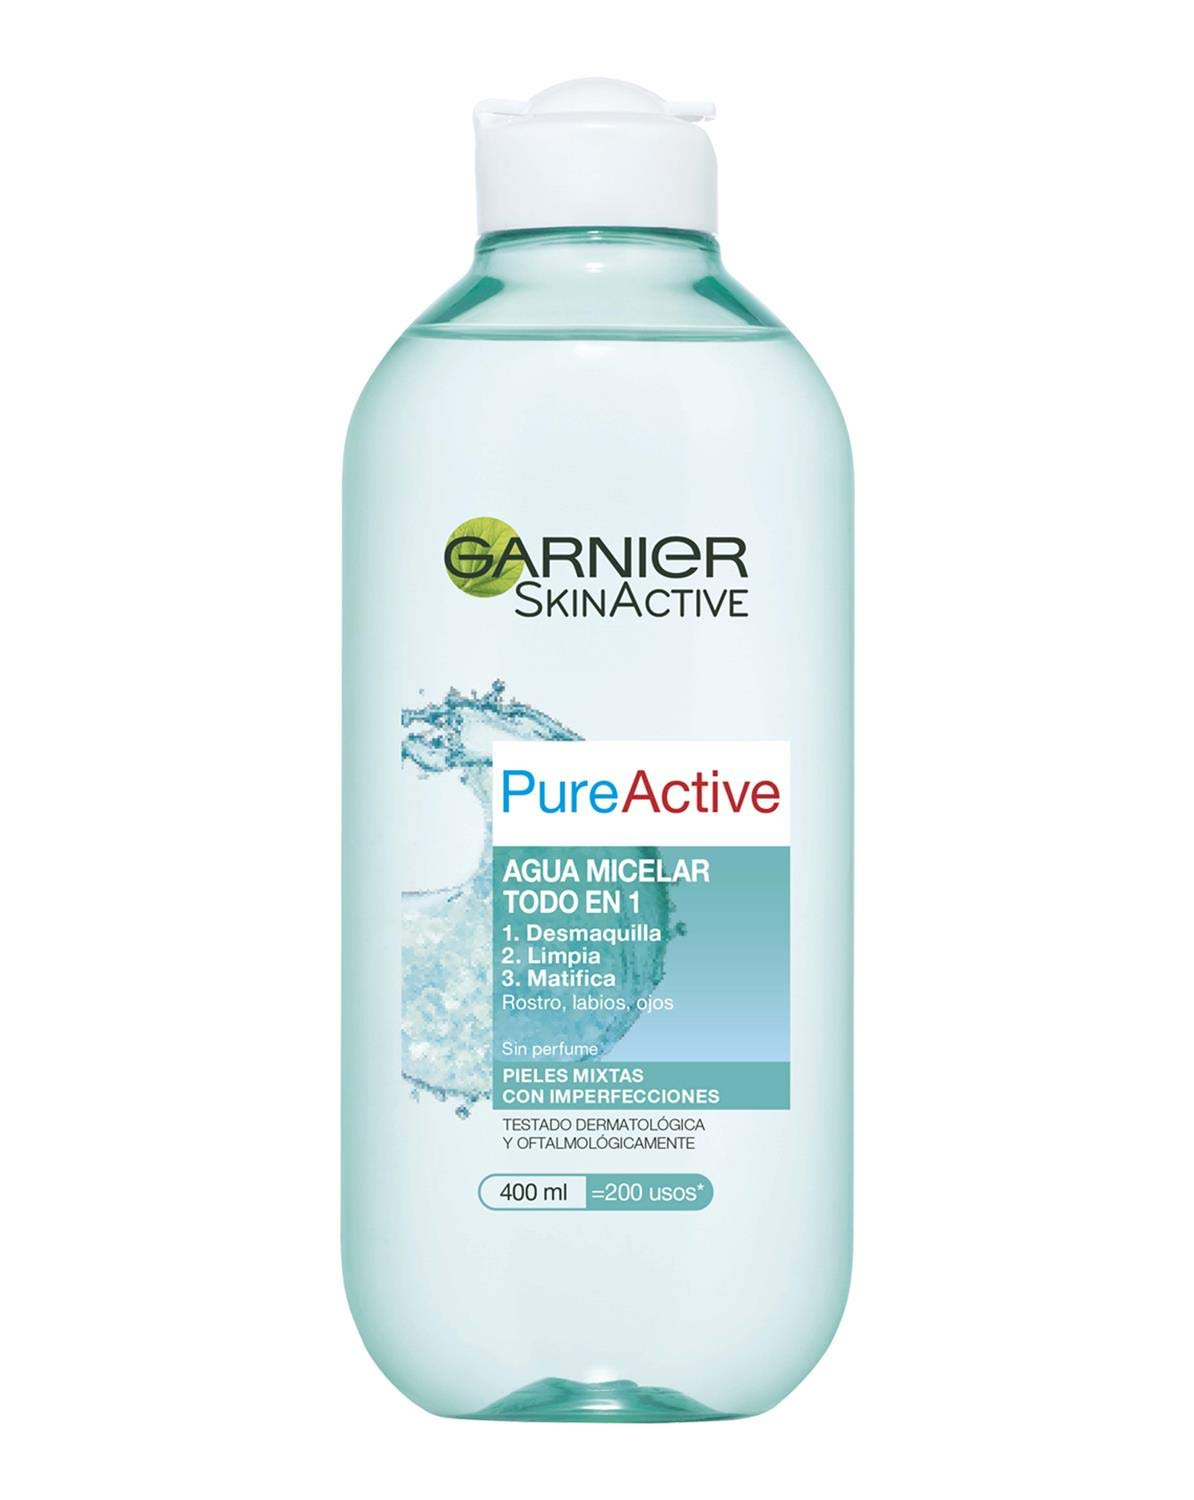 Garnier Skin Active Pure Active Mat Control Agua Micelar - 400 ml product image